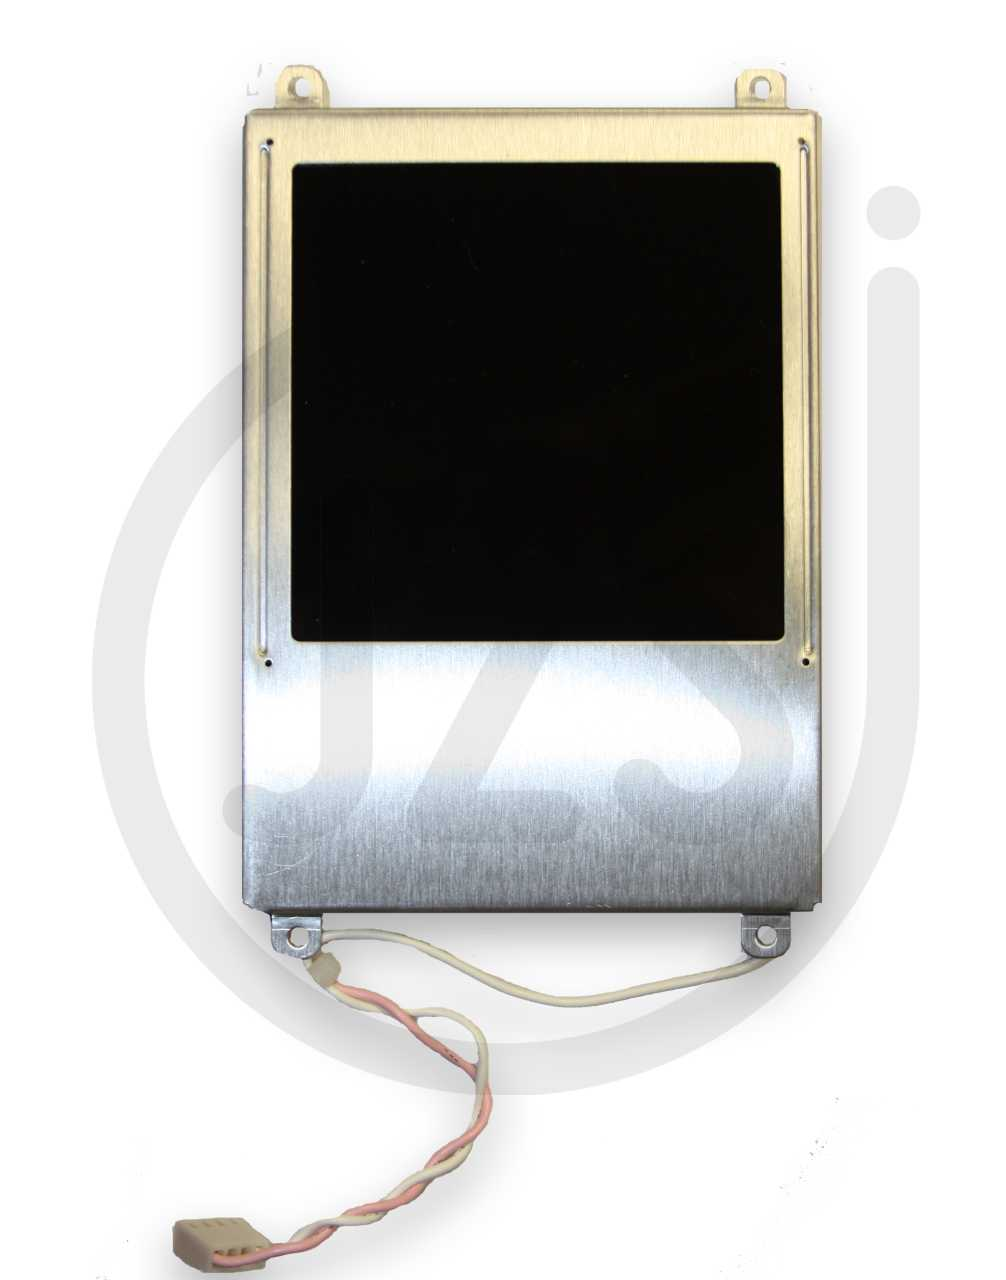 Plum A+ LCD Display Image